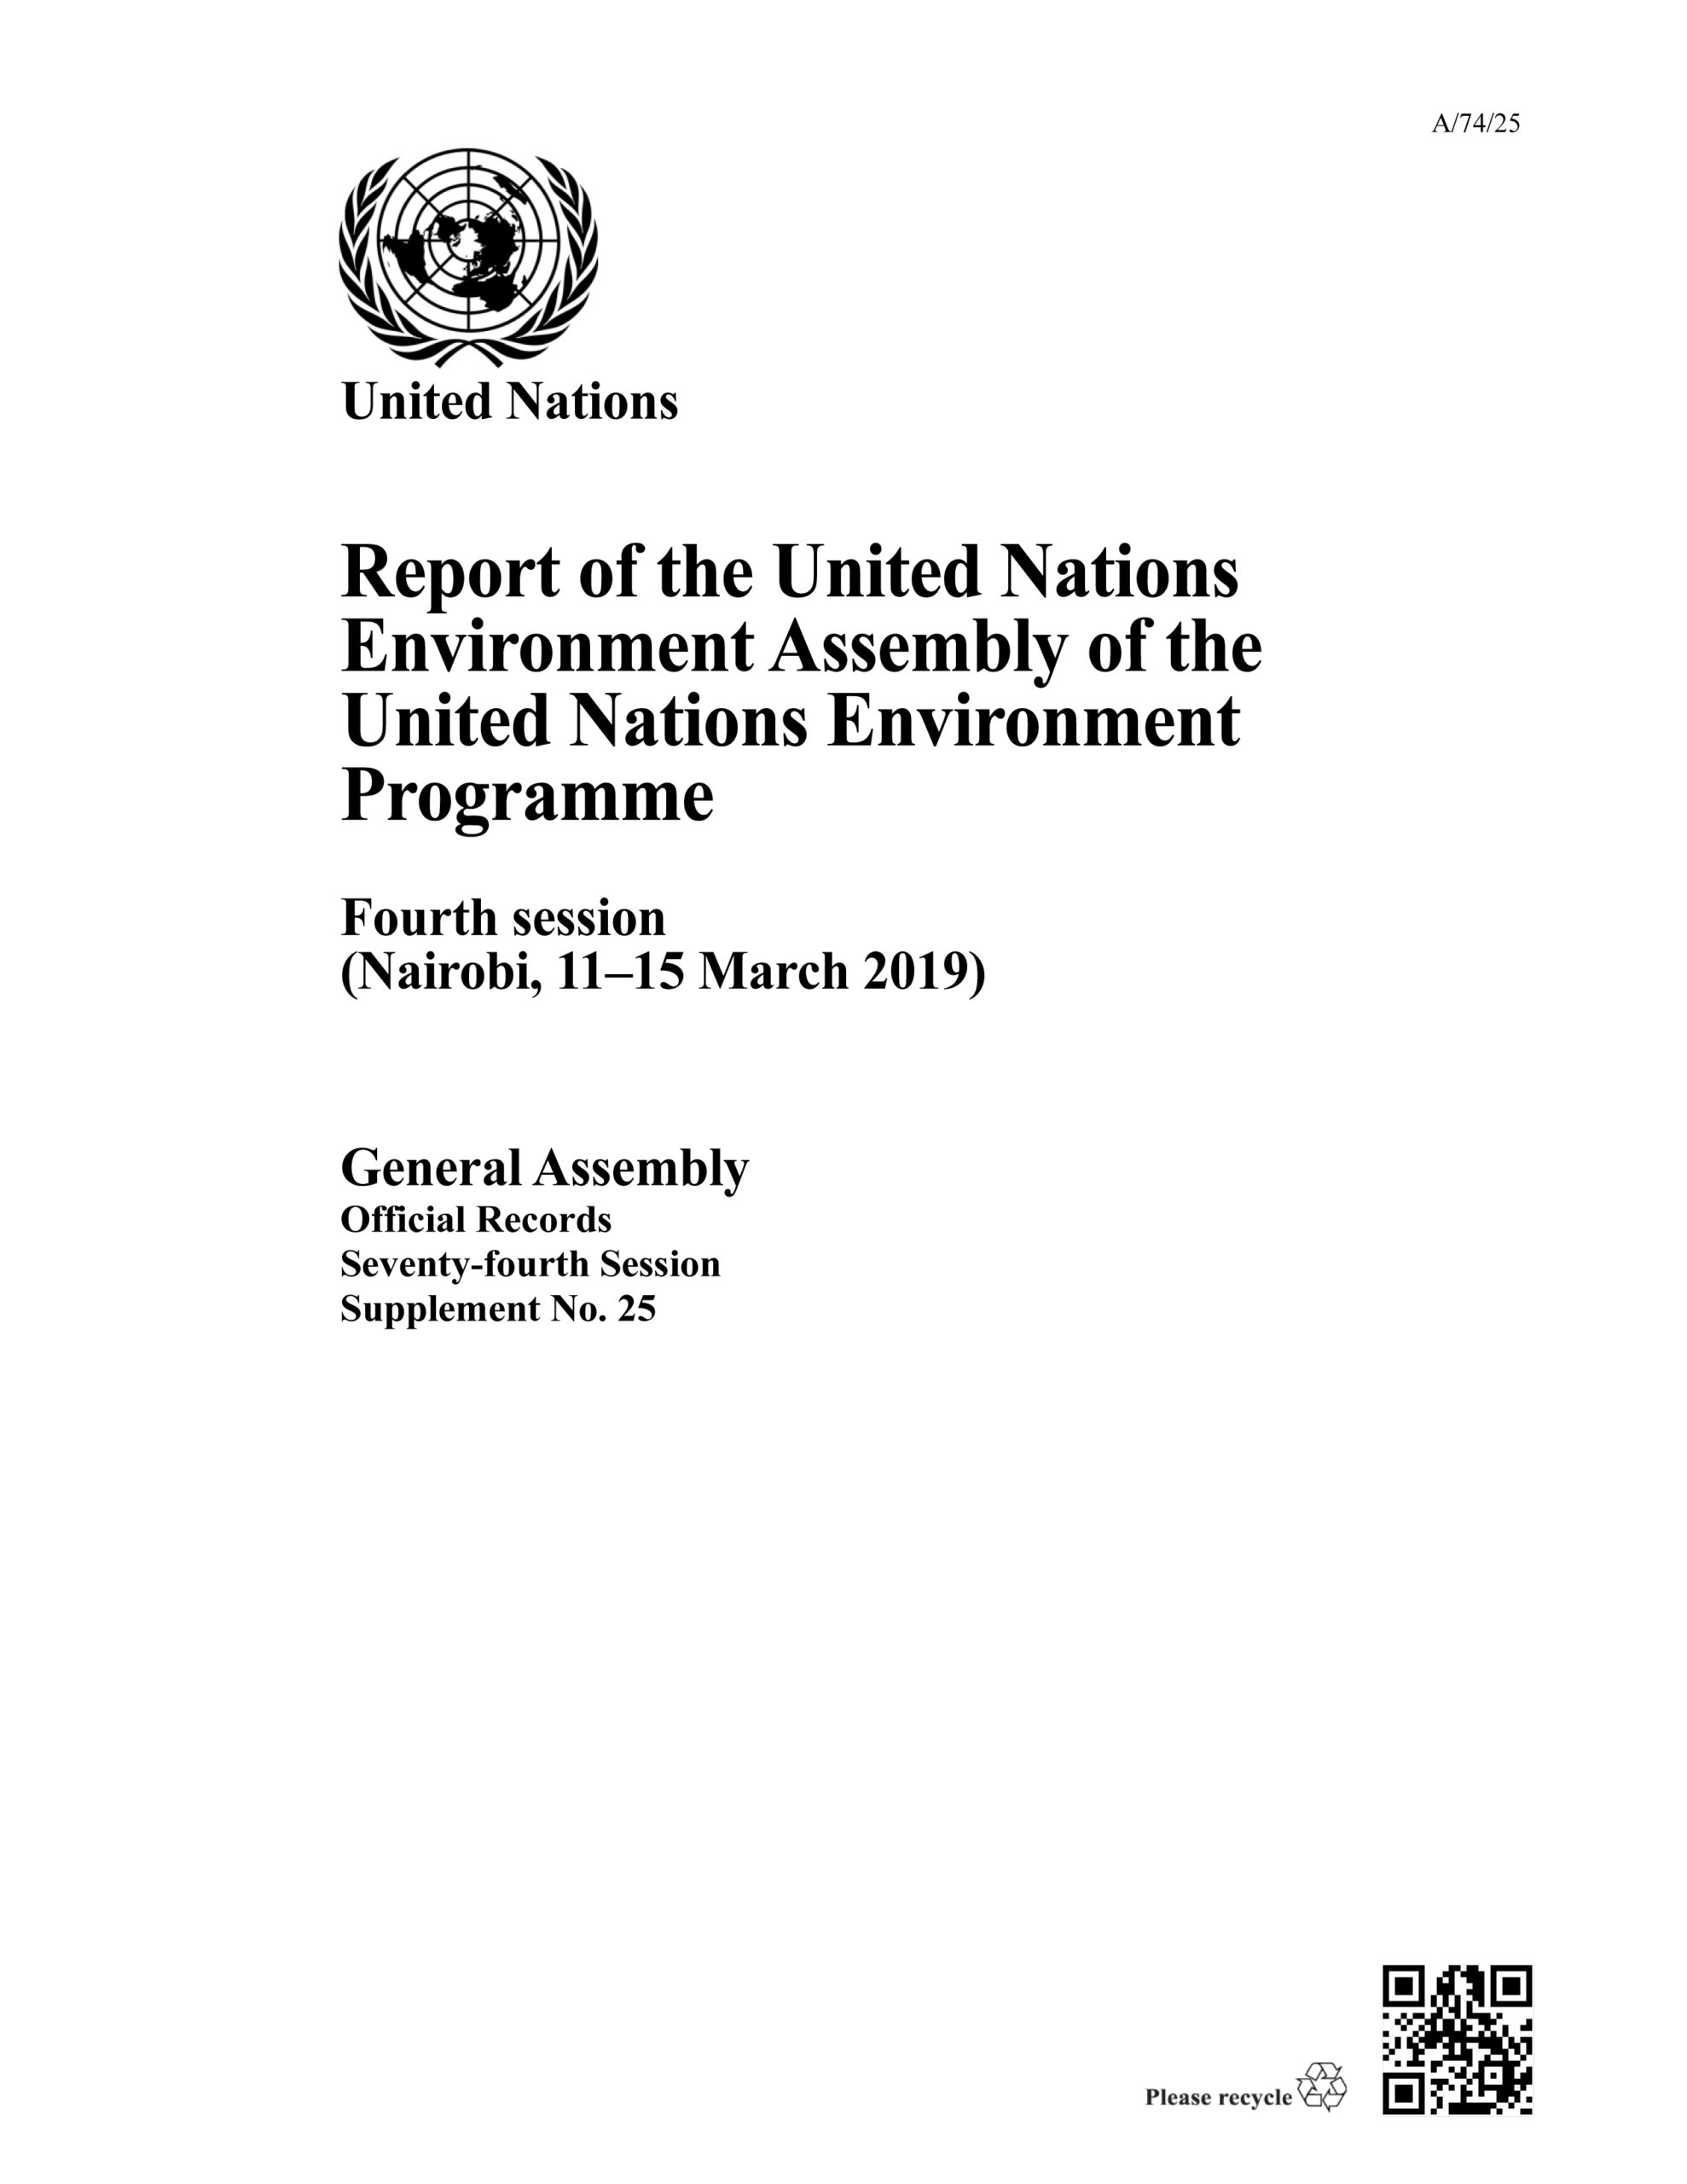 Report of the United Nations Environment Assembly of the United Nations Environment Programme